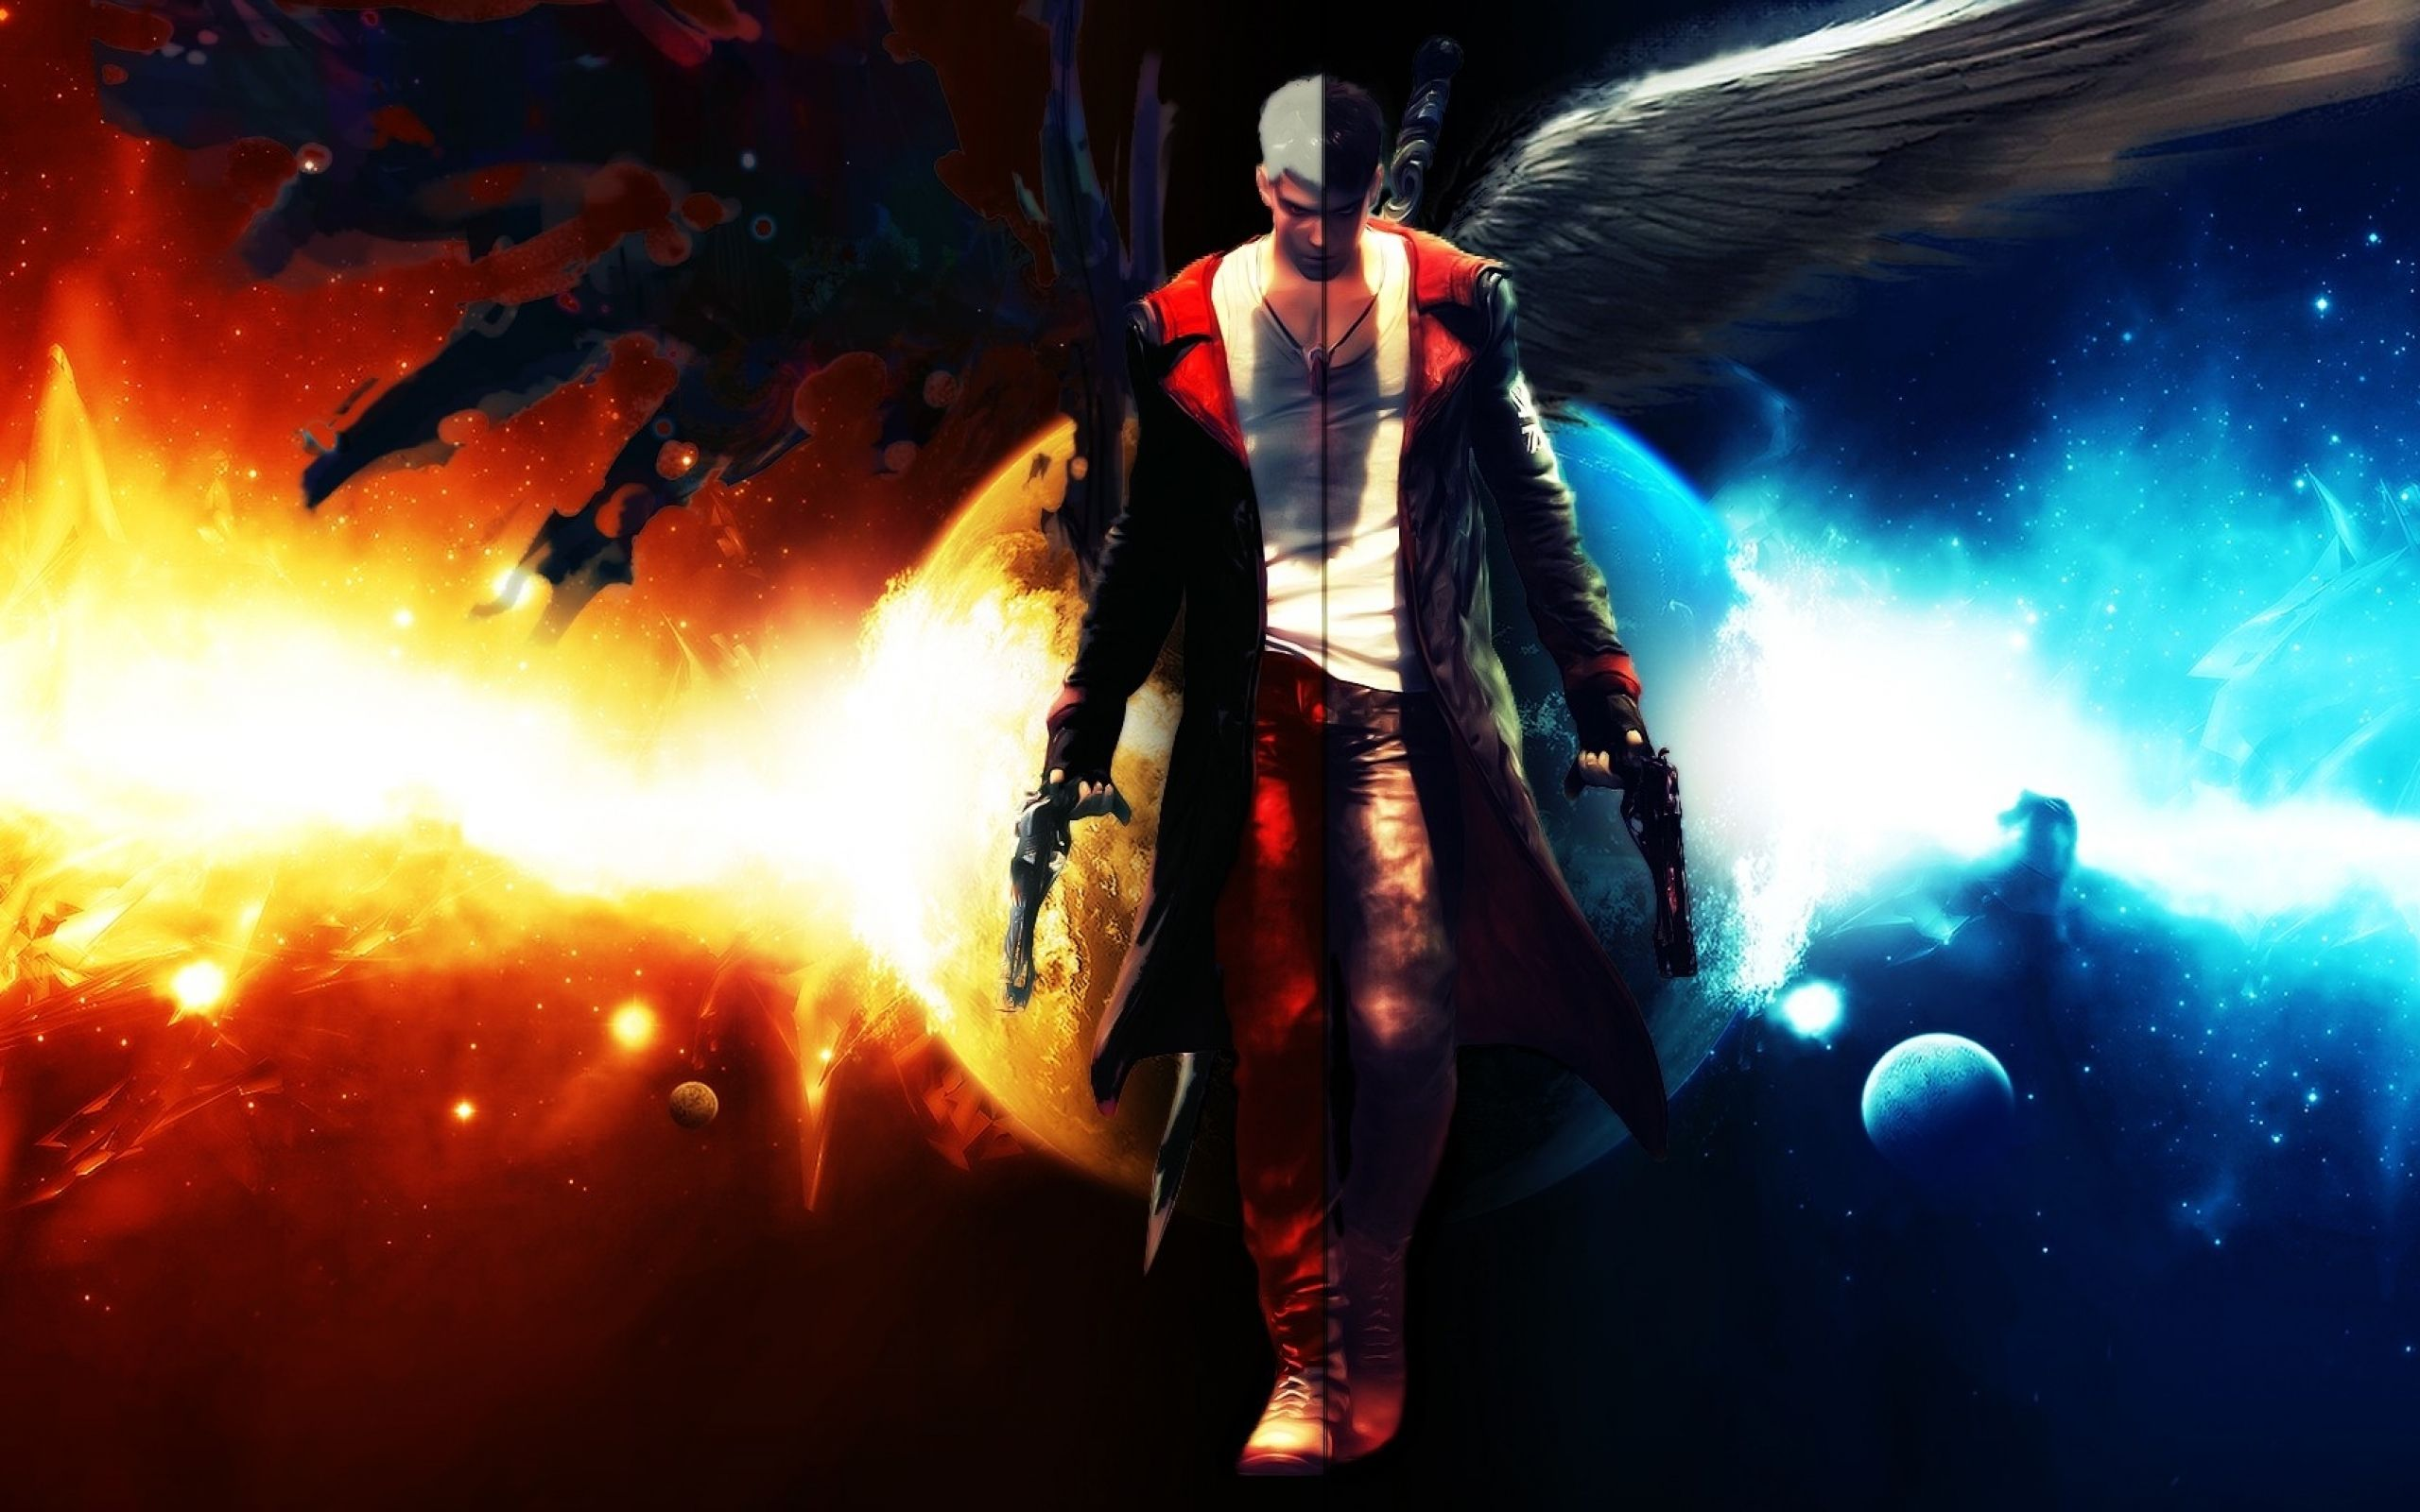 dmc devil may cry wallpapers top free dmc devil may cry backgrounds wallpaperaccess dmc devil may cry wallpapers top free